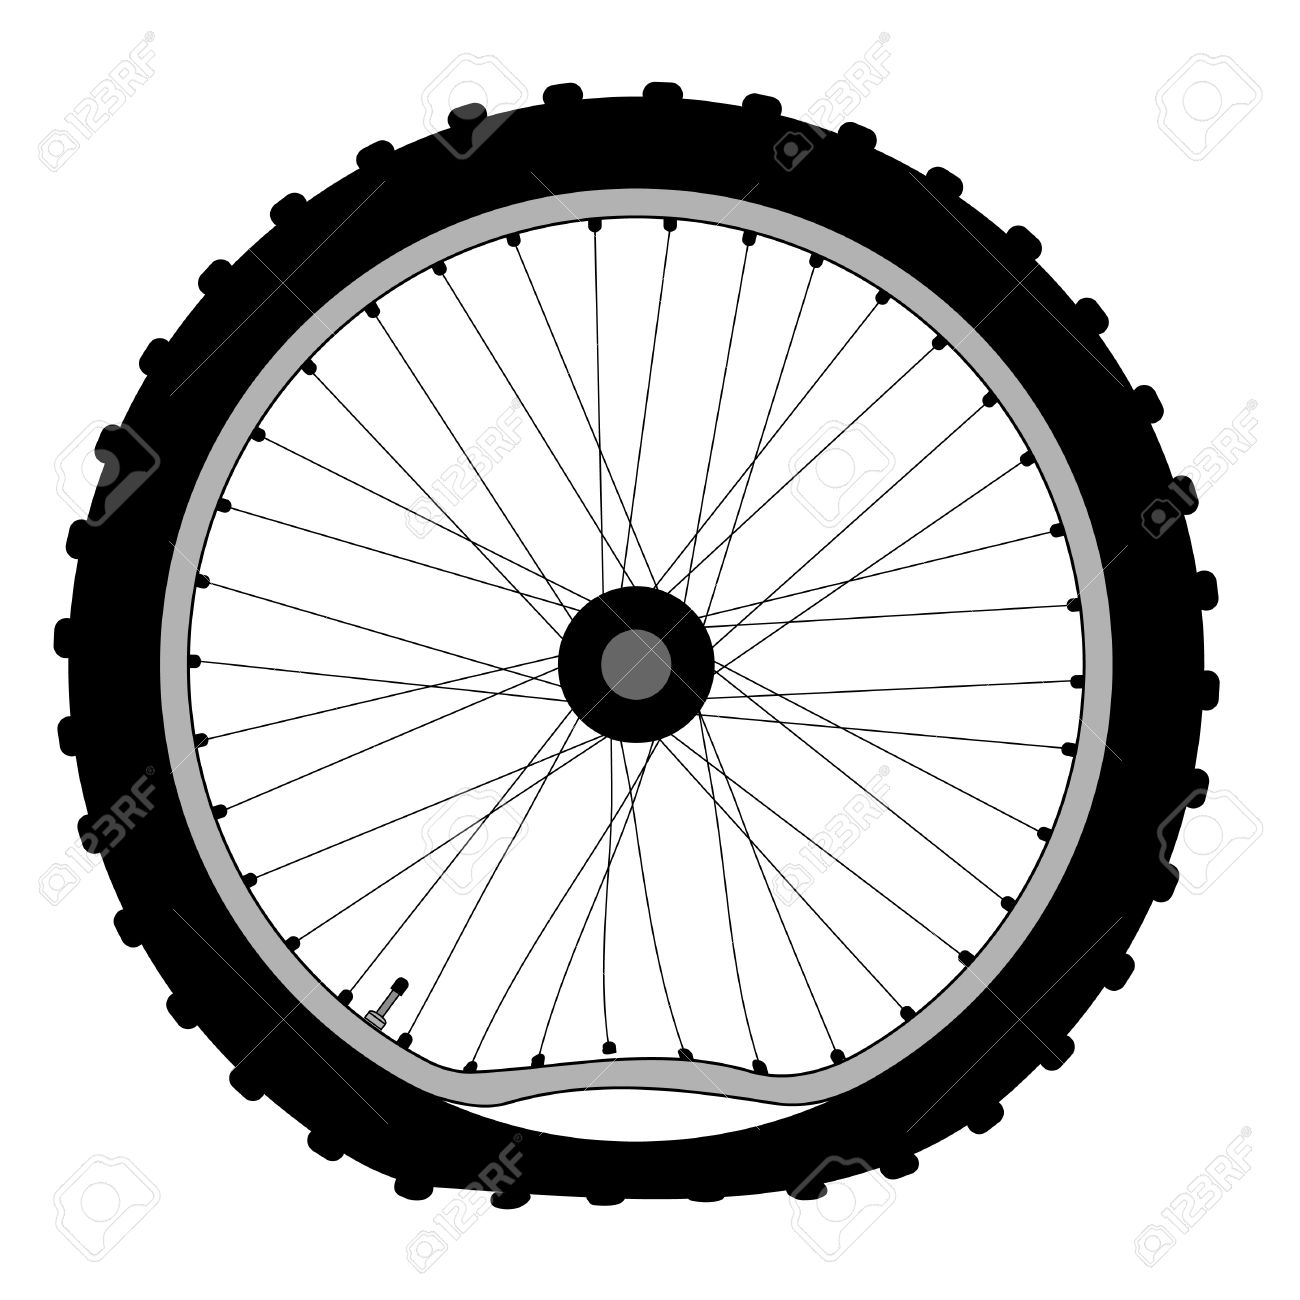 Vintage road bike tire clipart.